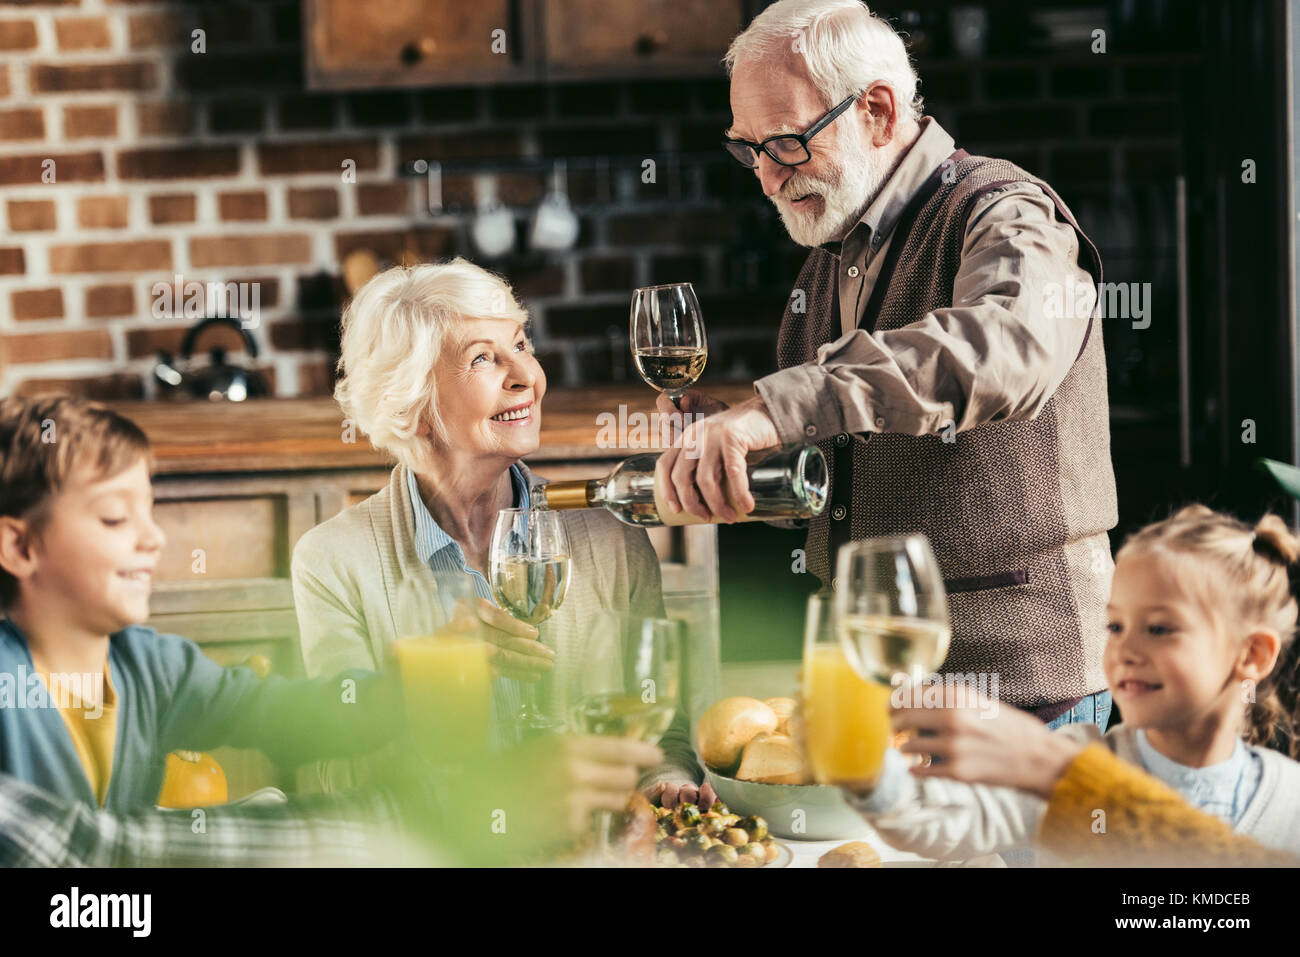 senior man pouring wine for woman - Stock Image